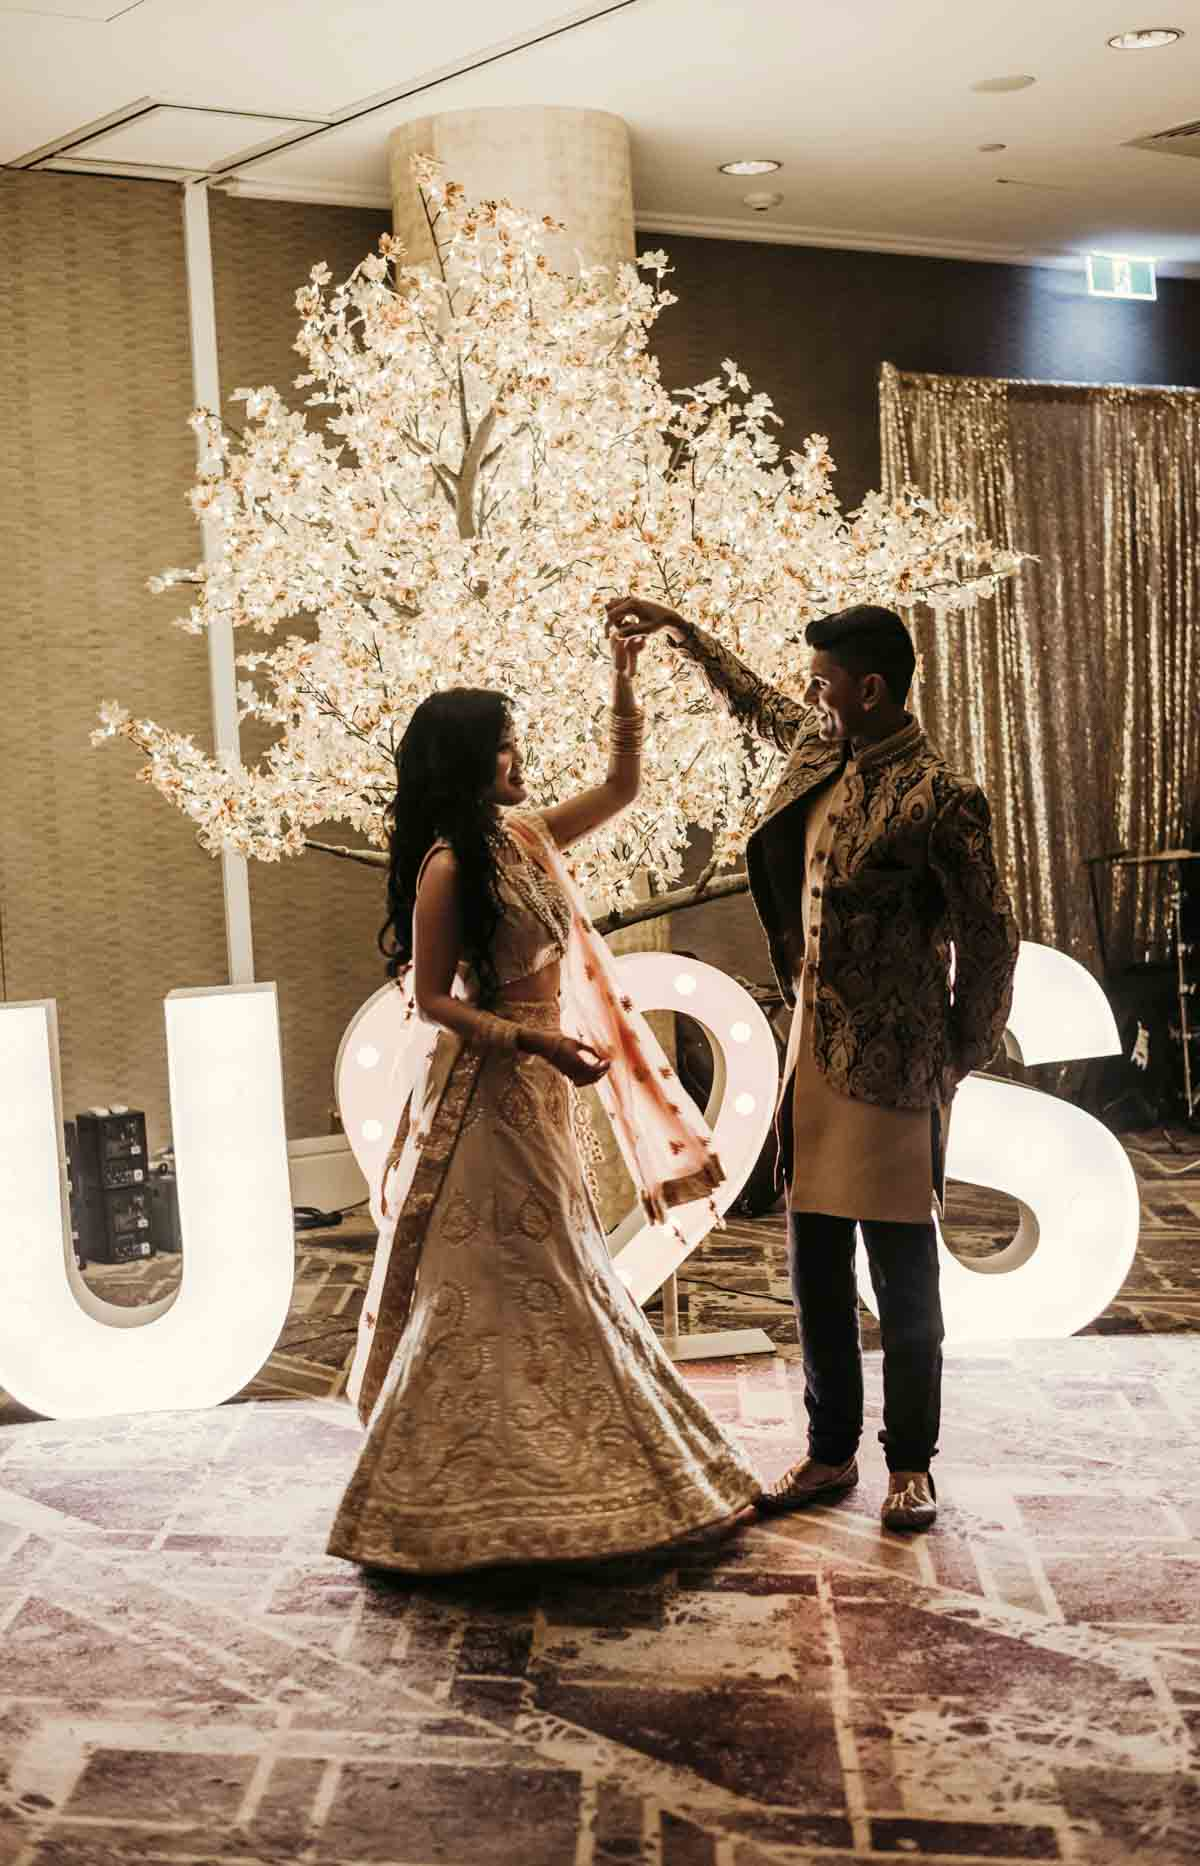 Shay and Uppi's modern and romantic fusion wedding reception party was a grand affair with light up letters, pyrotechnics and even a cheese wedding cake. The reception took place at The Rydges hotel in Brisbane, Australia. Photography captured by Sal Singh Photography.